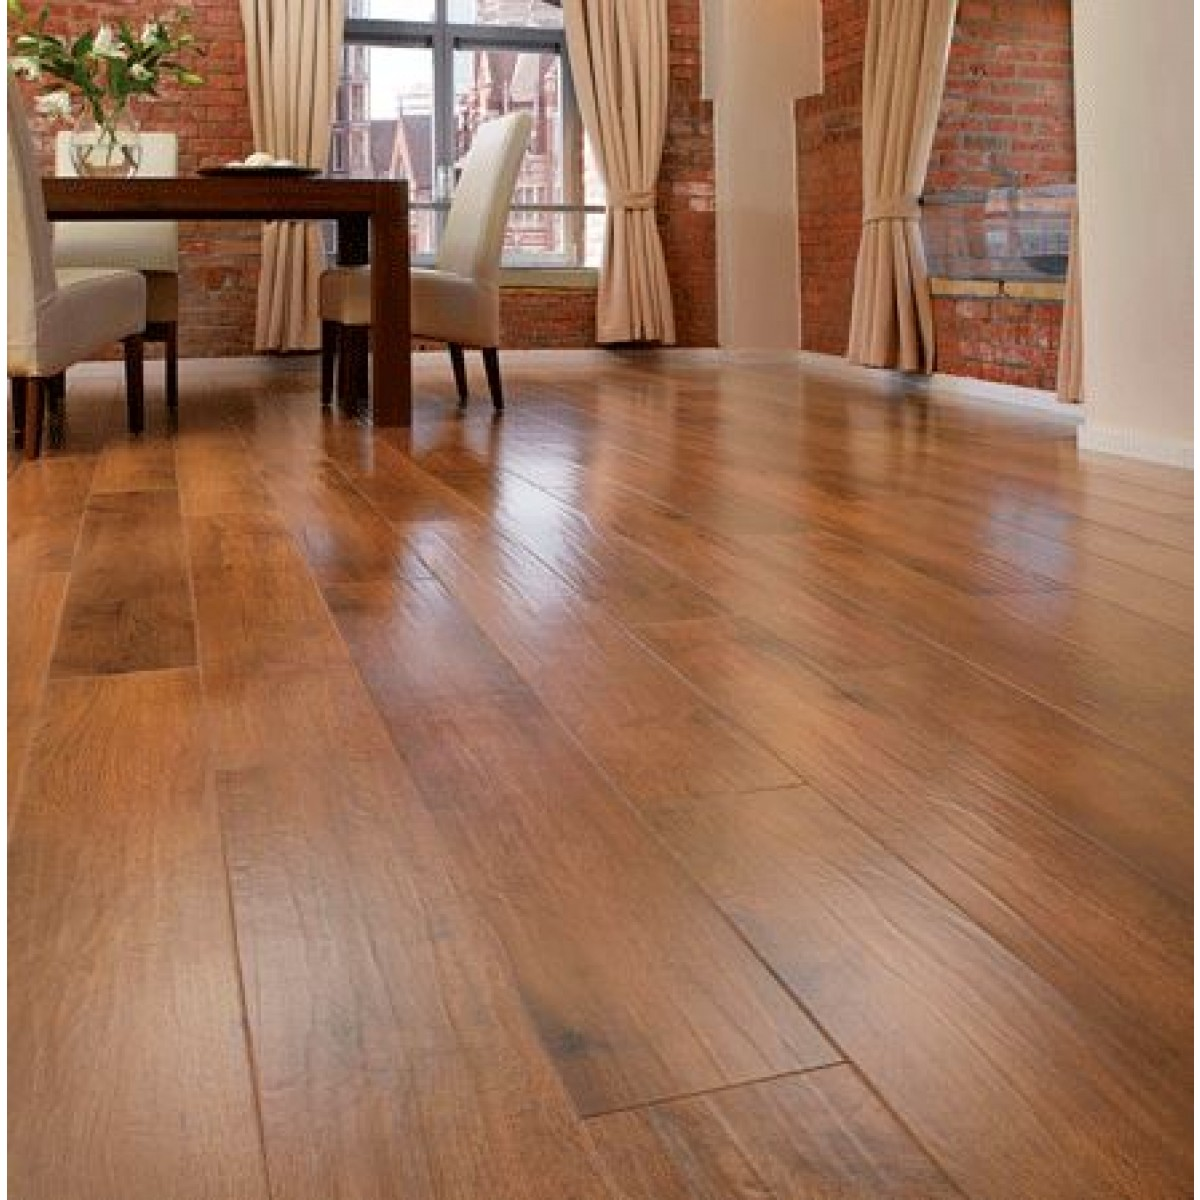 Karndean Art Select Rl03 Autumn Oak Vinyl Flooring